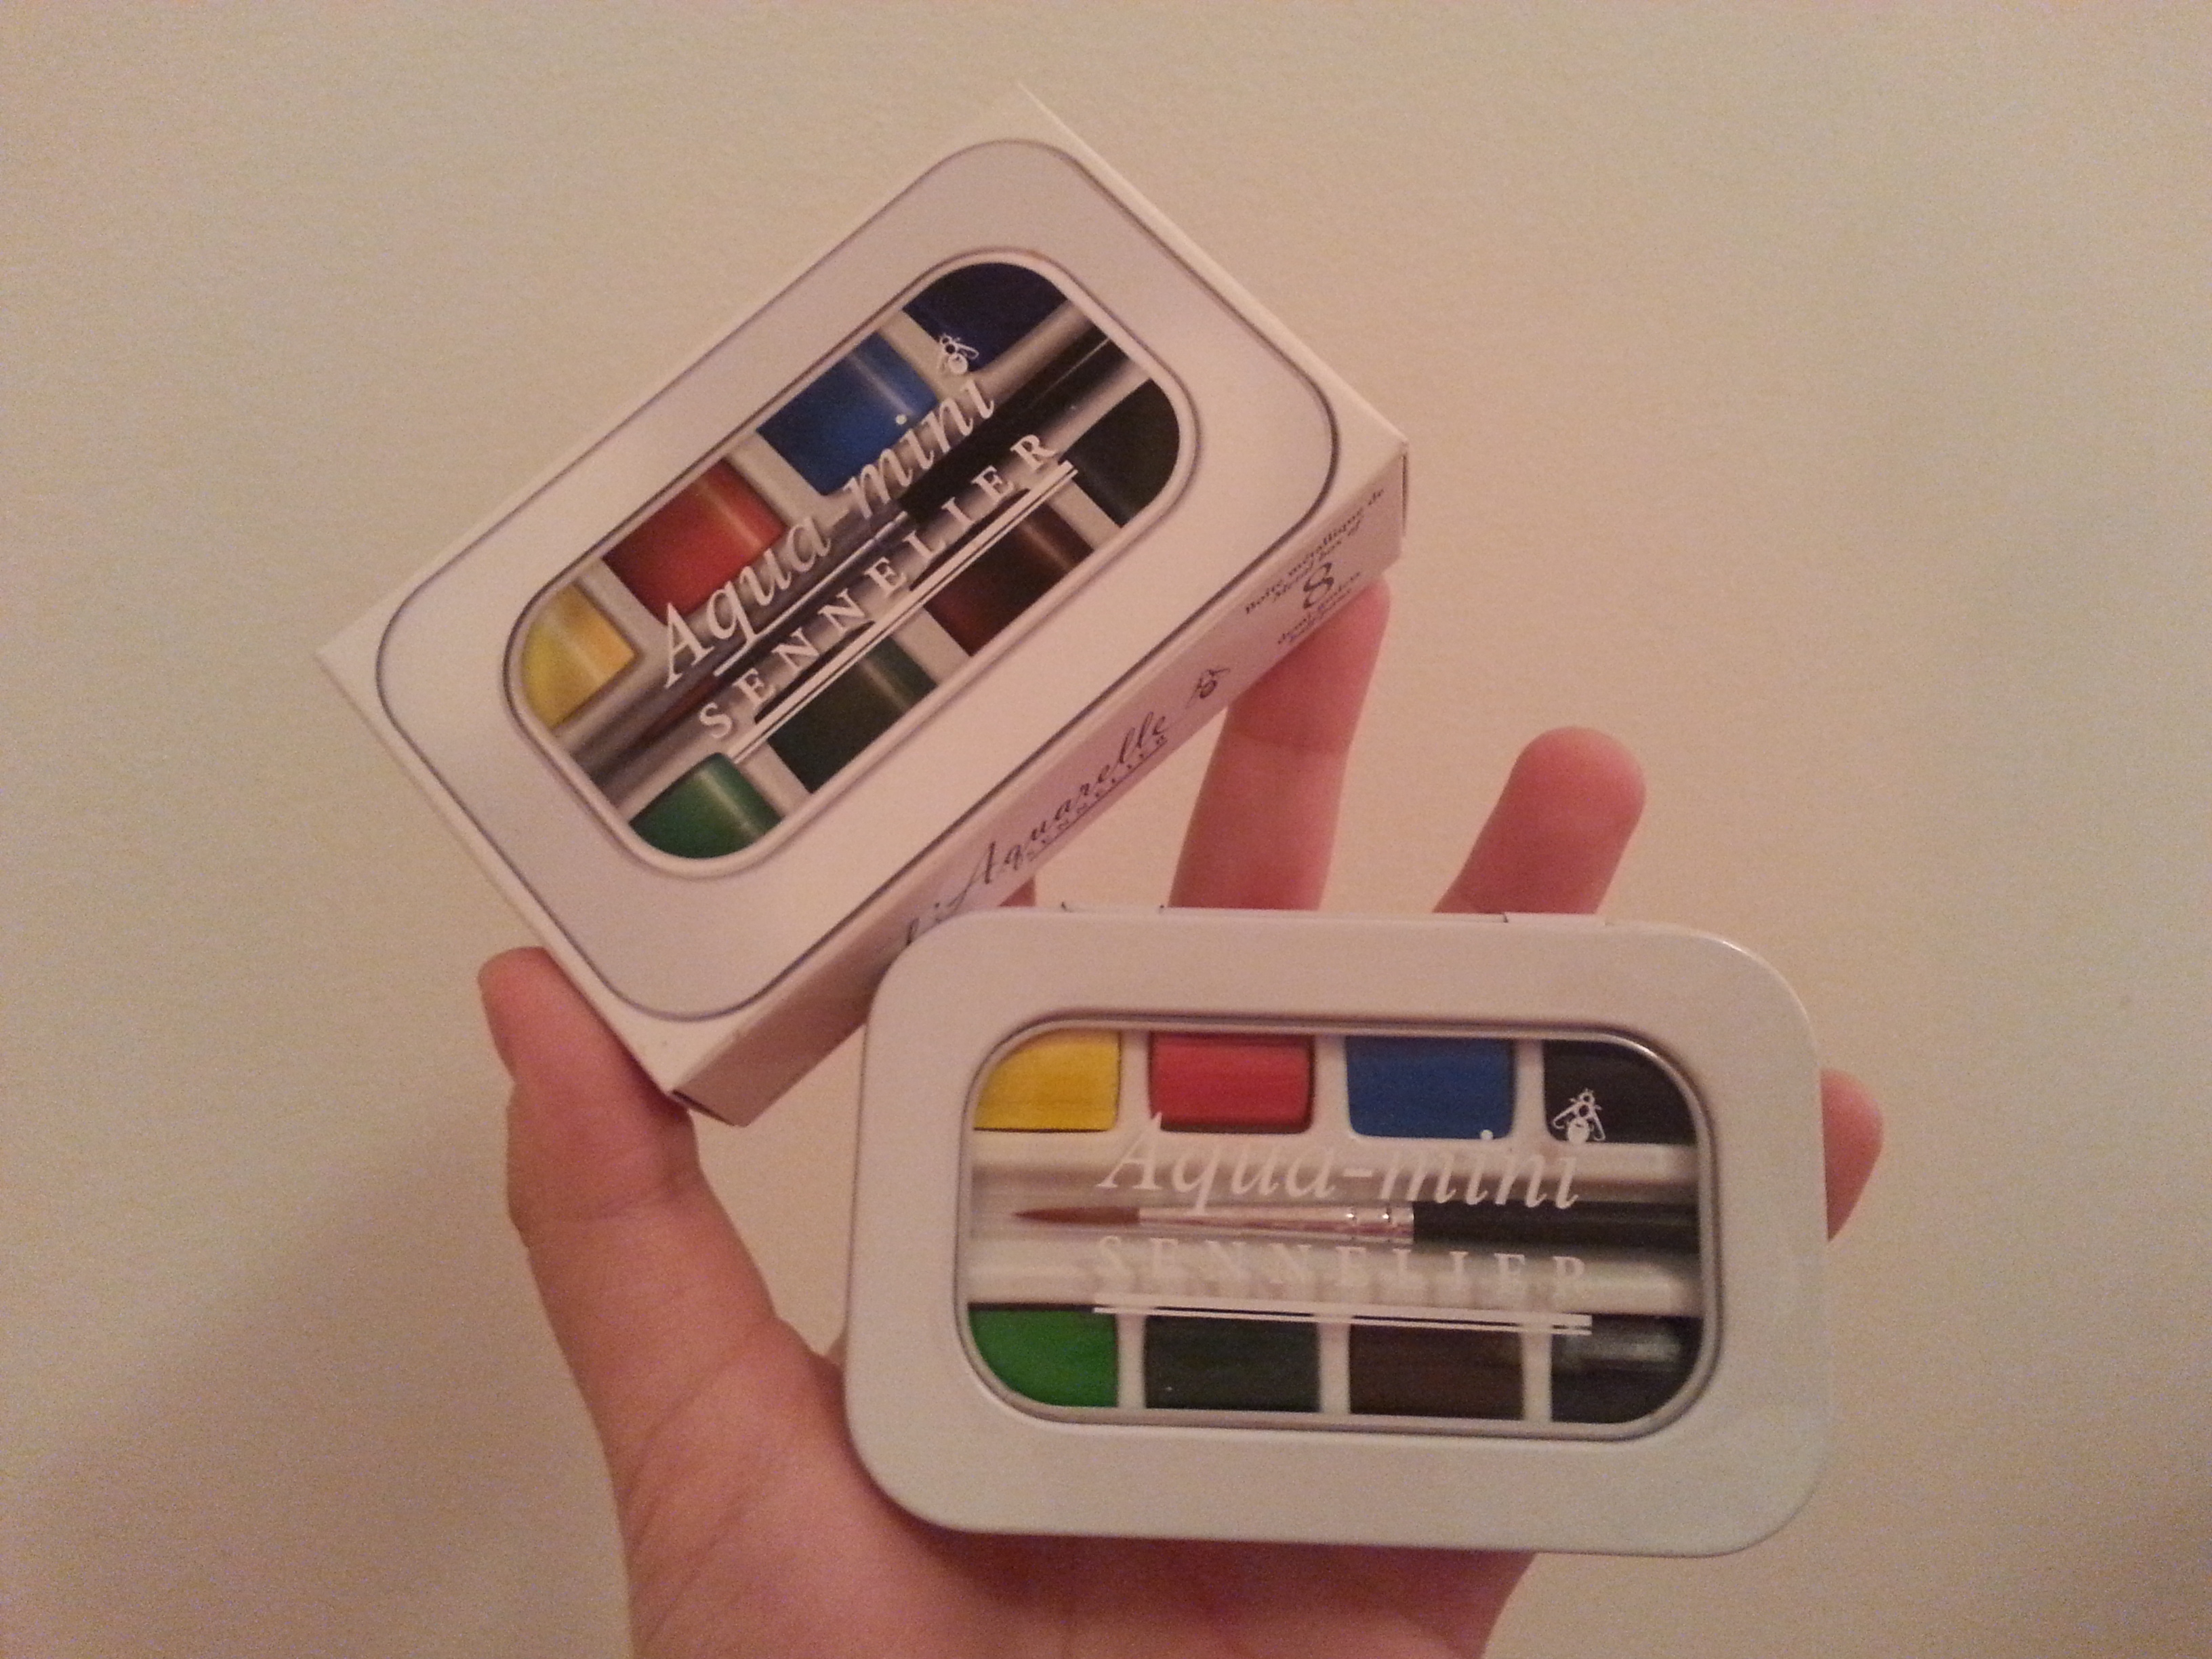 3264x2448 Review Sennelier French Watercolors Aqua Mini Set The Mind Of